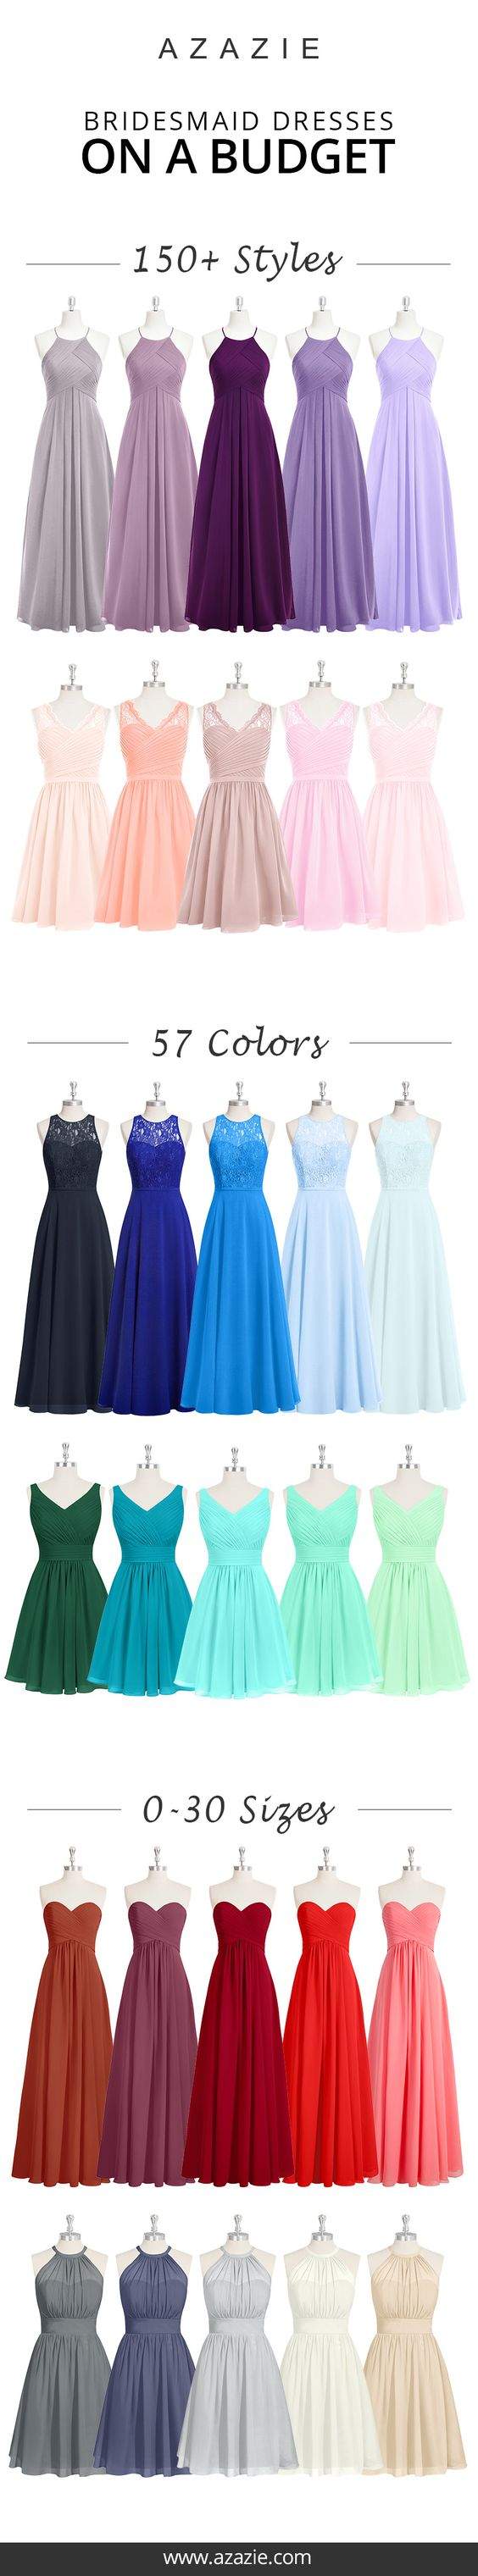 best images about bridesmaid dresses on pinterest lilac wedding